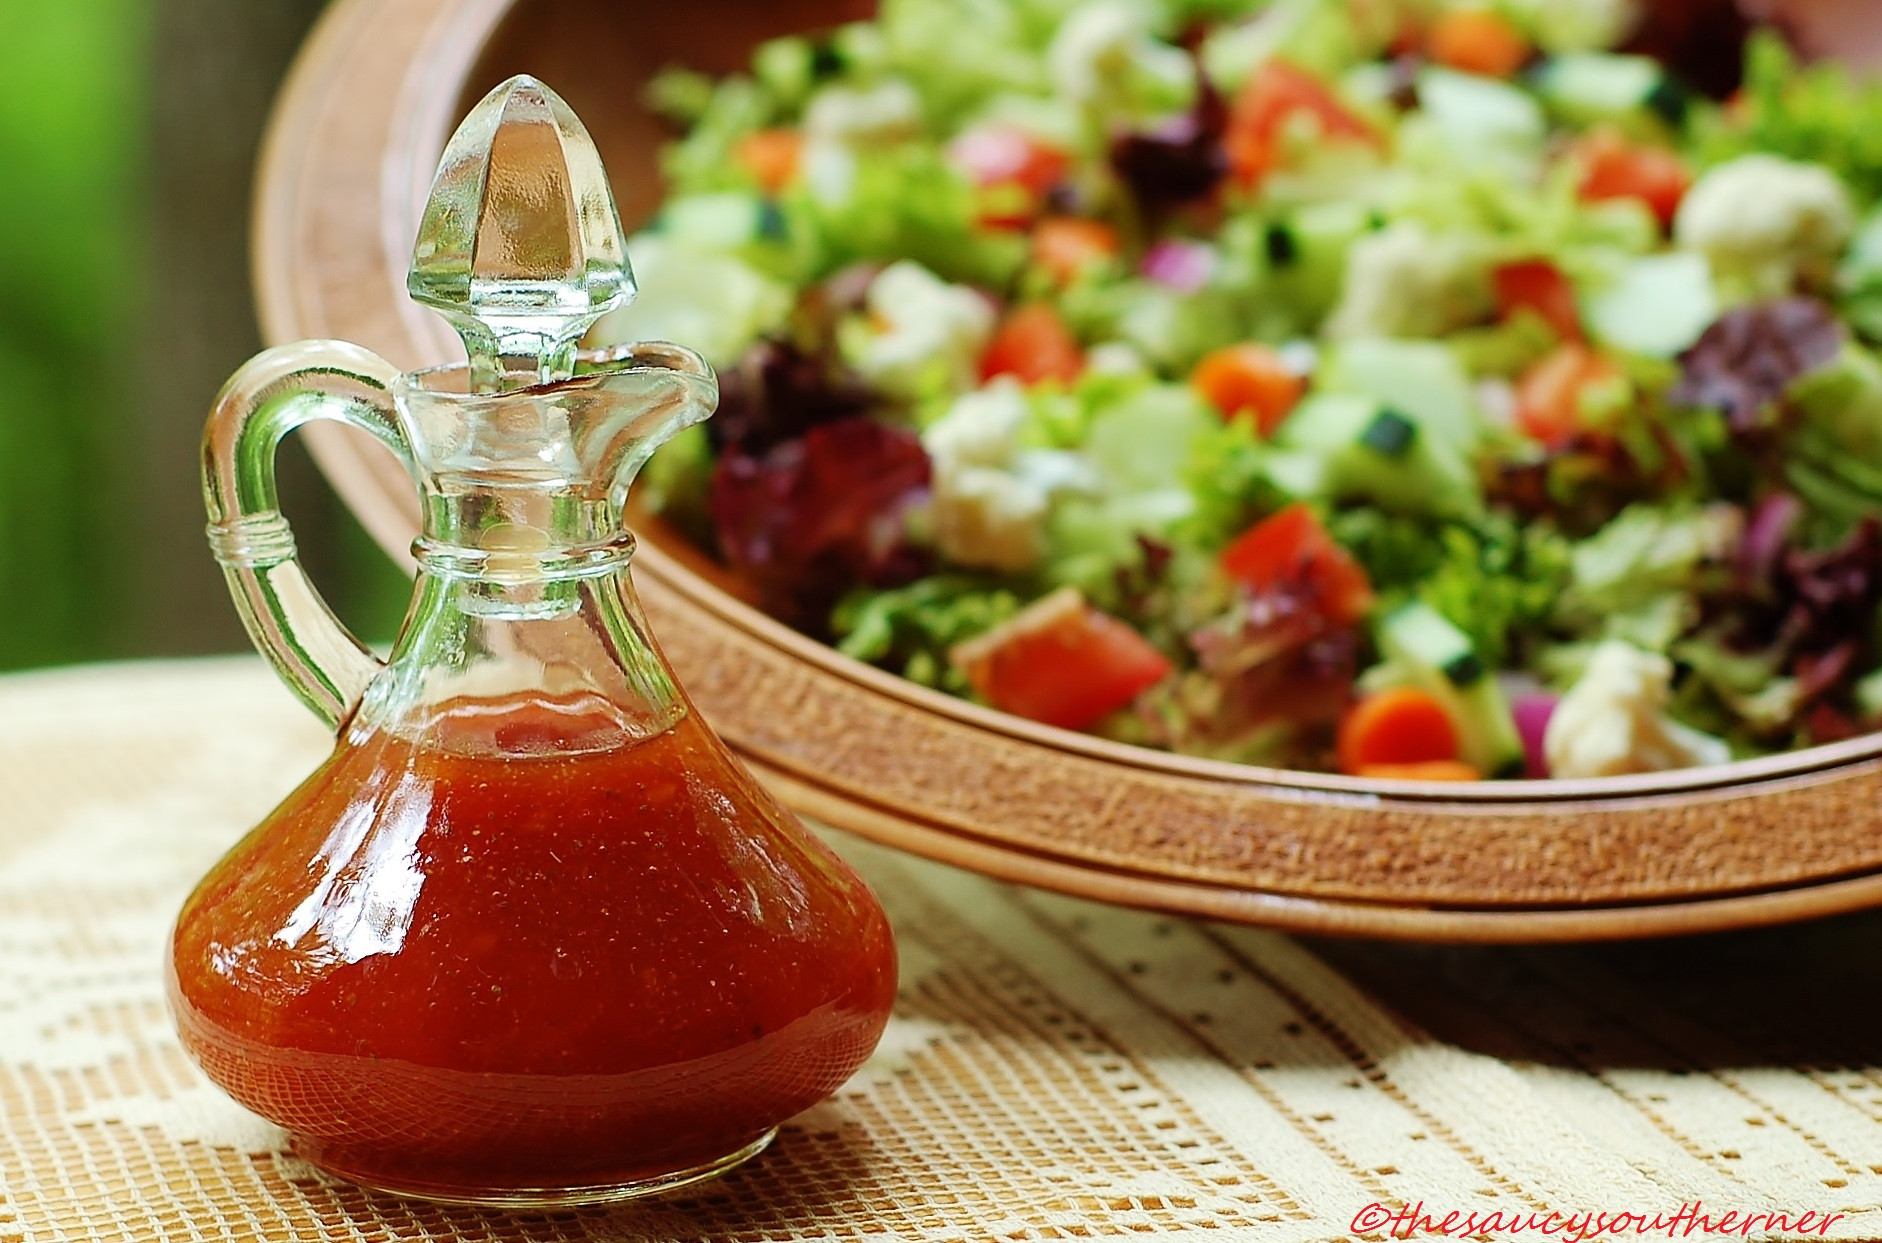 Recipe For Salad Dressings  No Fat Honey French Dressing – Meatless Monday